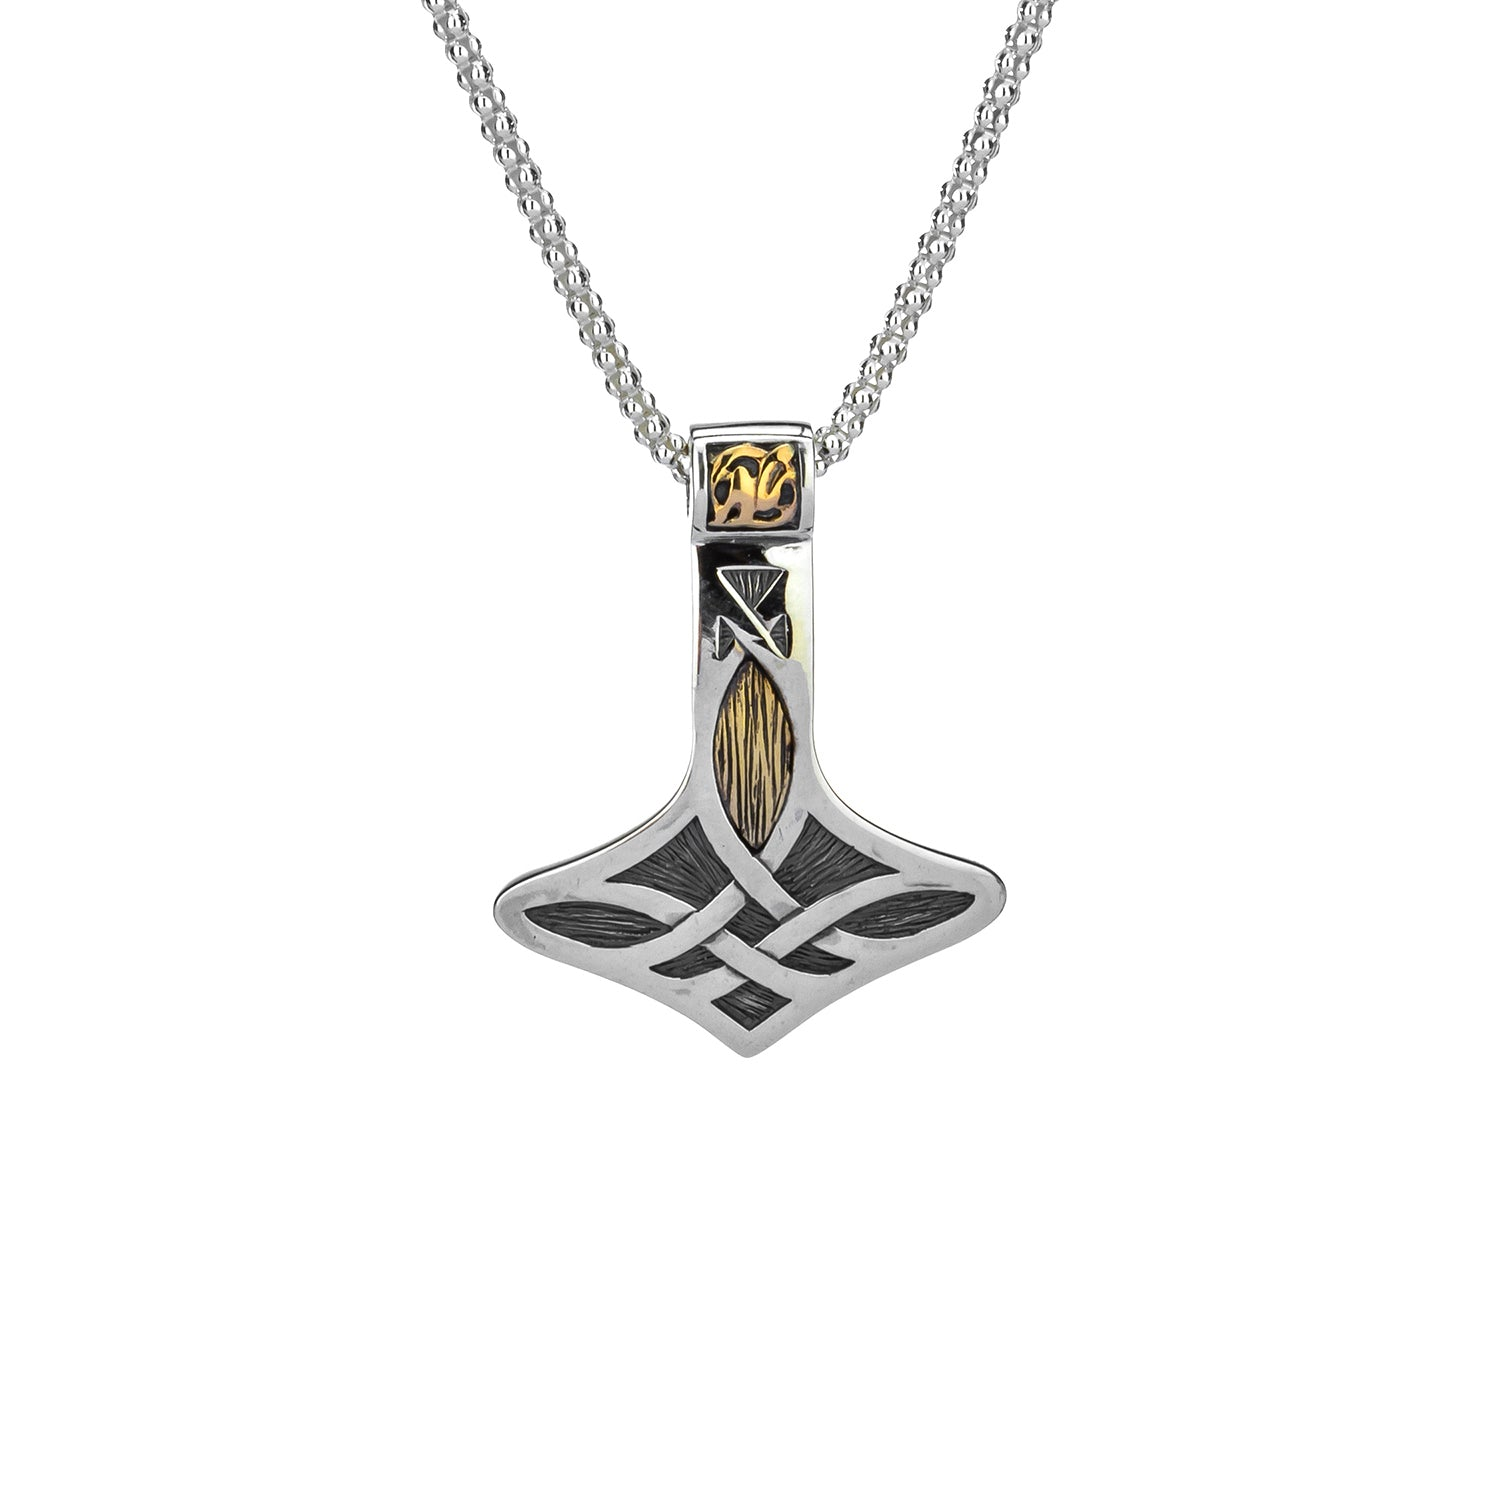 Pendant Oxidized 10k Thor's Hammer Small Pendant from welch and company jewelers near syracuse ny